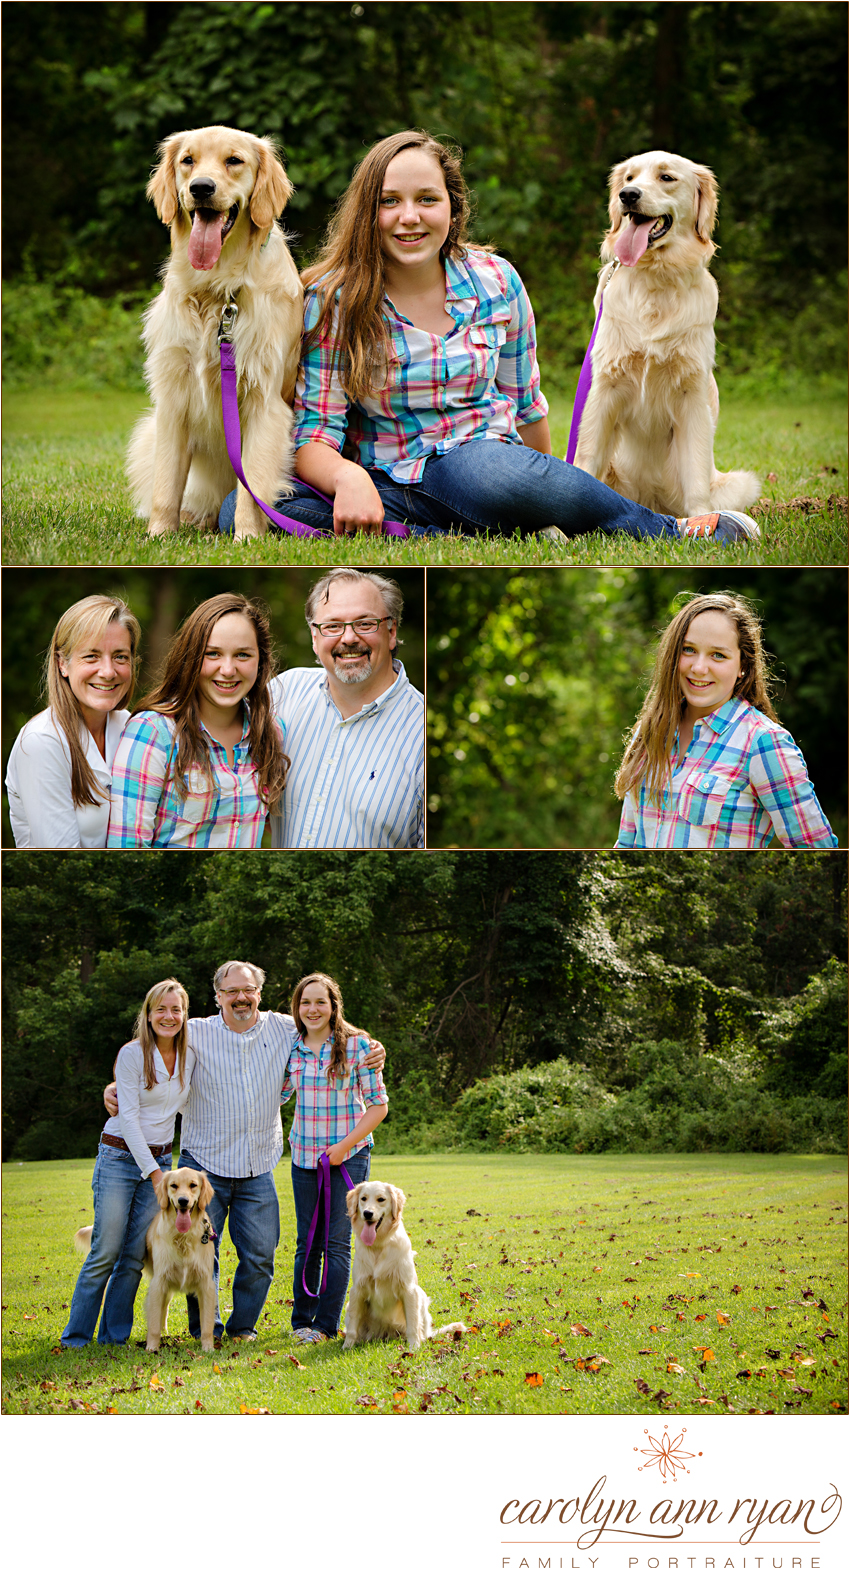 Carolyn Ann Ryan photographs and family with their two golden retrievers for a family portrait session in Charlotte, NC